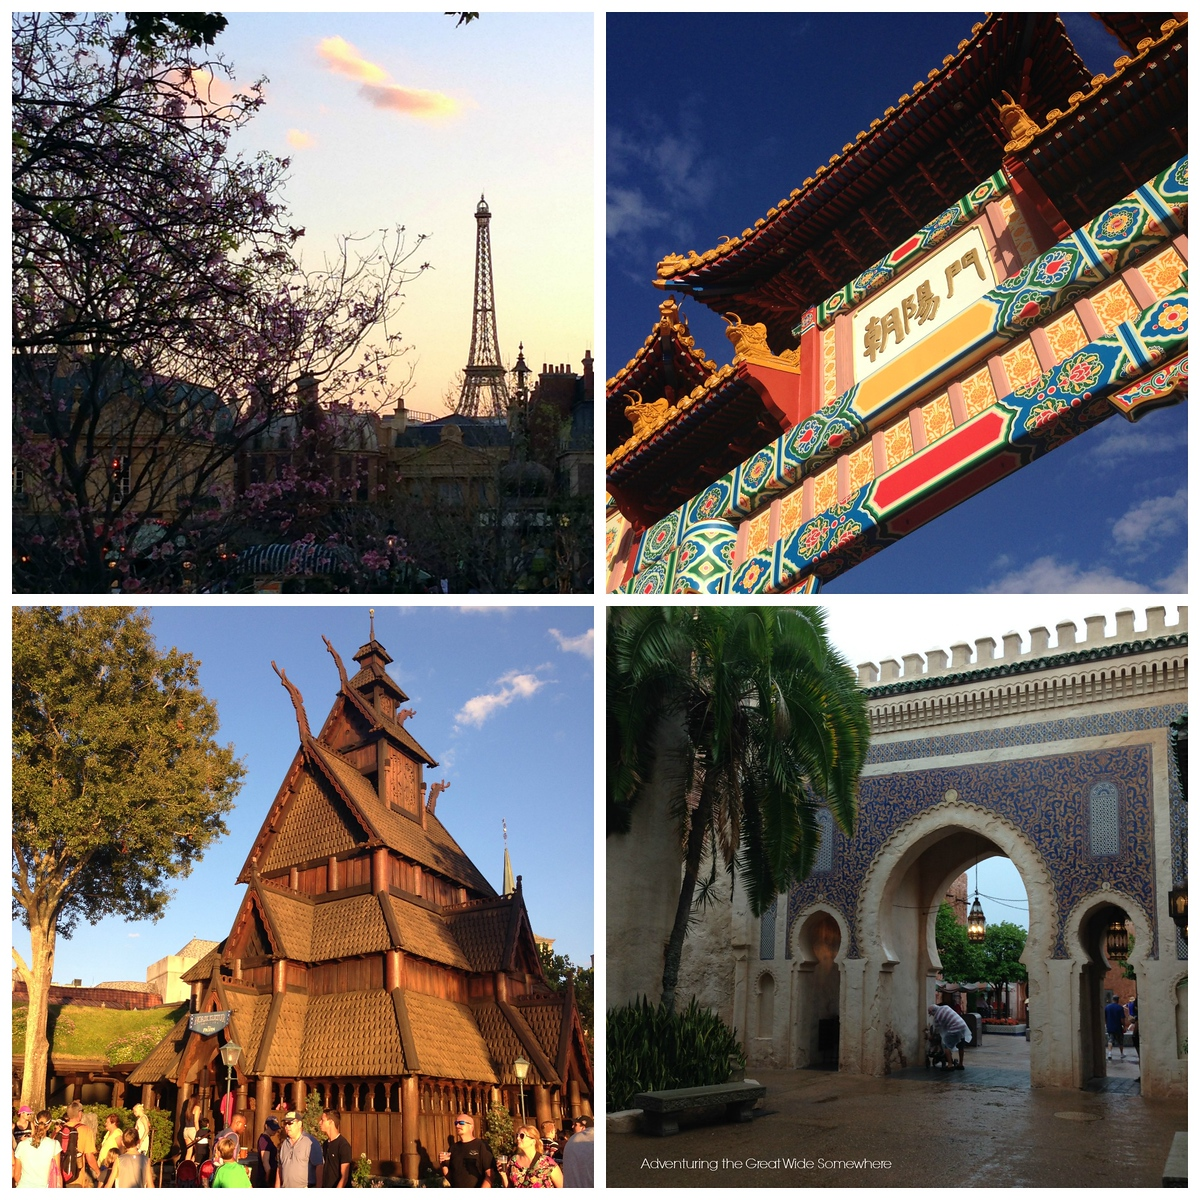 Visit France, China, Norway, Morocco and More at the 2015 Epcot International Food and Wine Festival